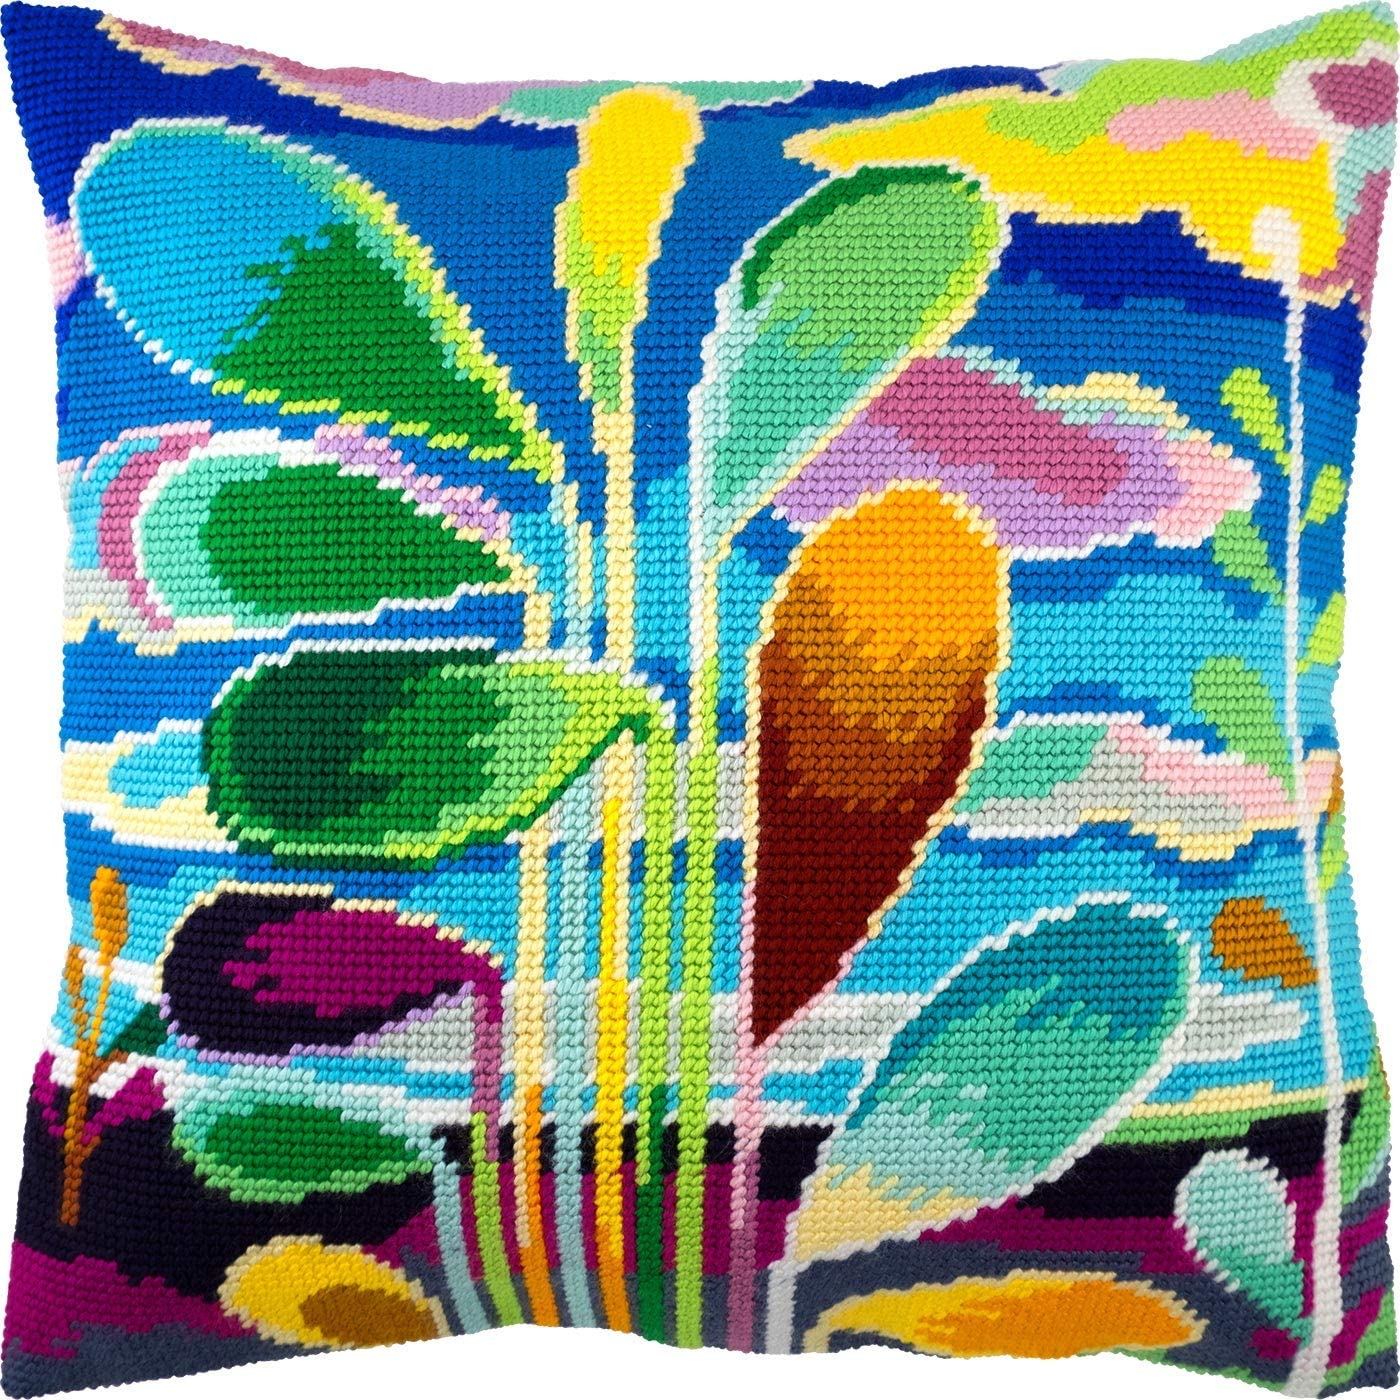 Abstract New product Super popular specialty store Tree. Needlepoint Kit. Throw 16×16 Pr Inches. Pillow